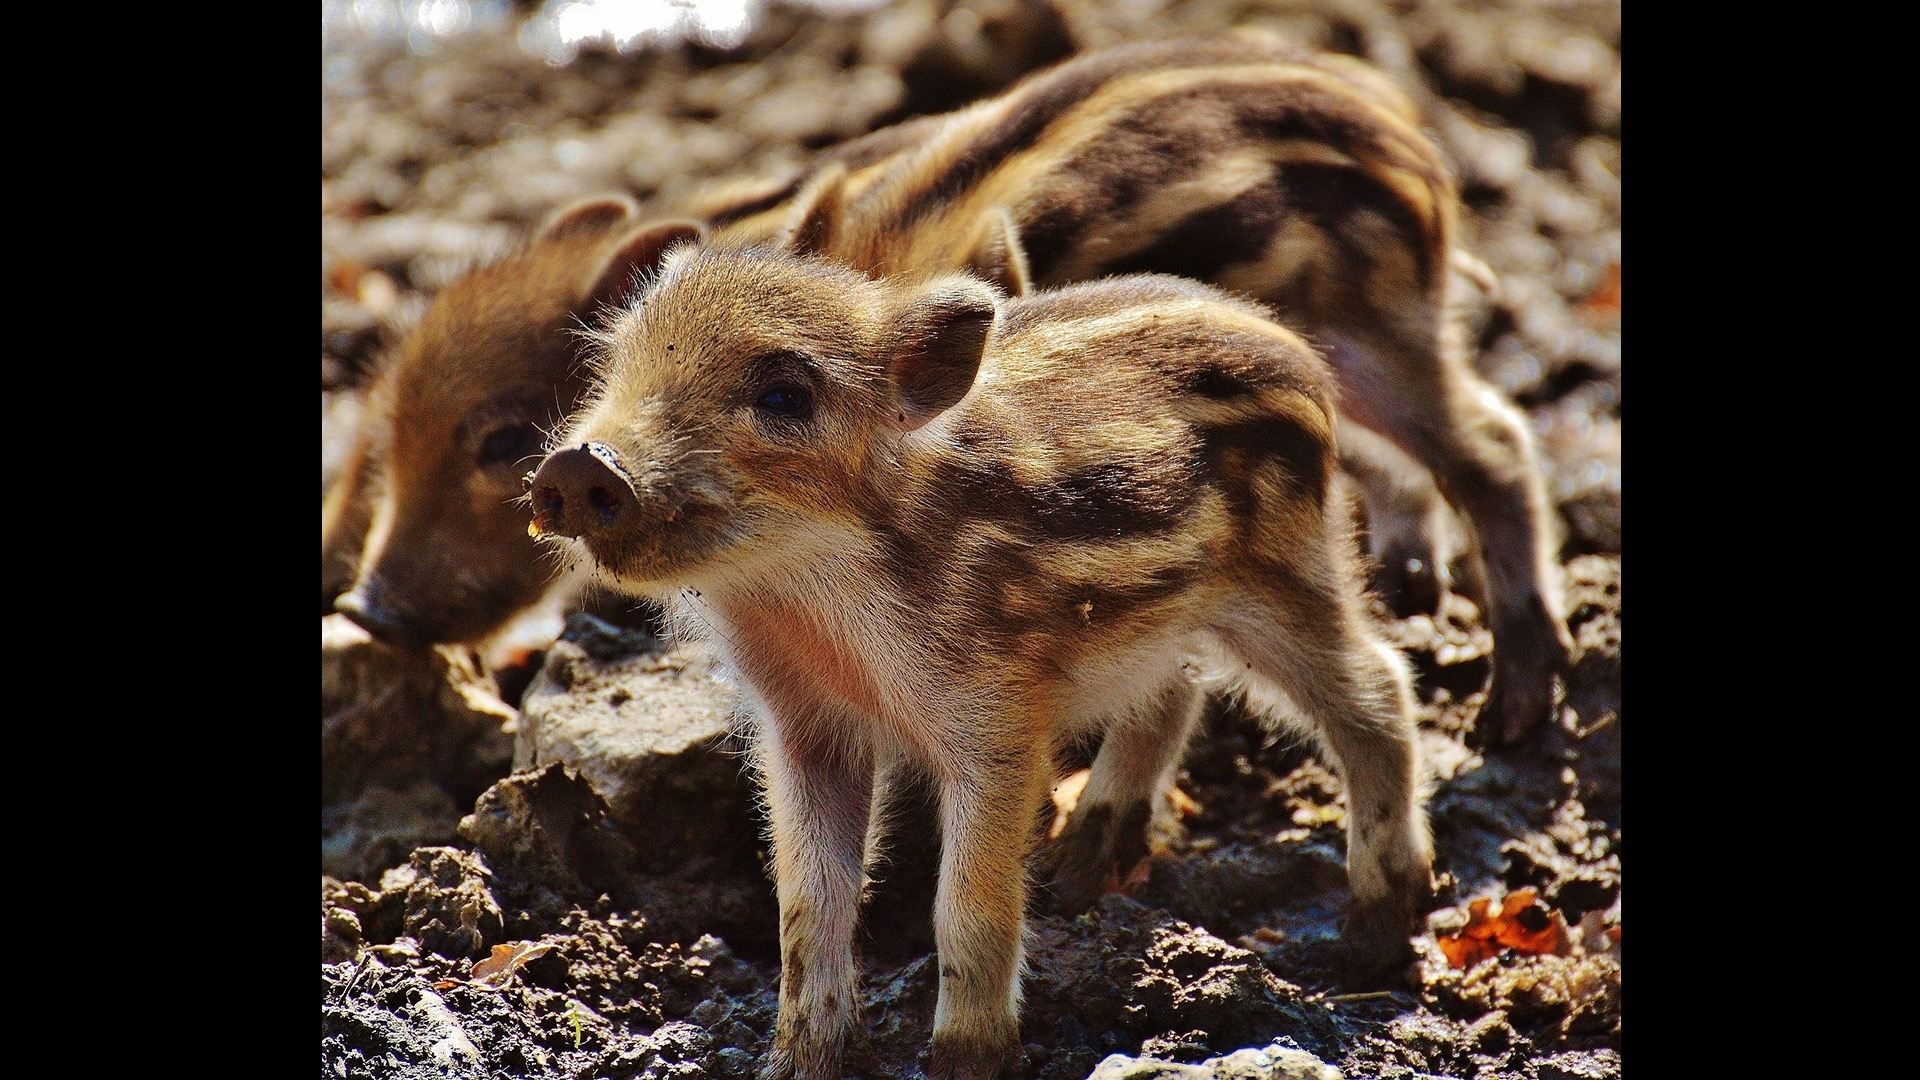 another piglet